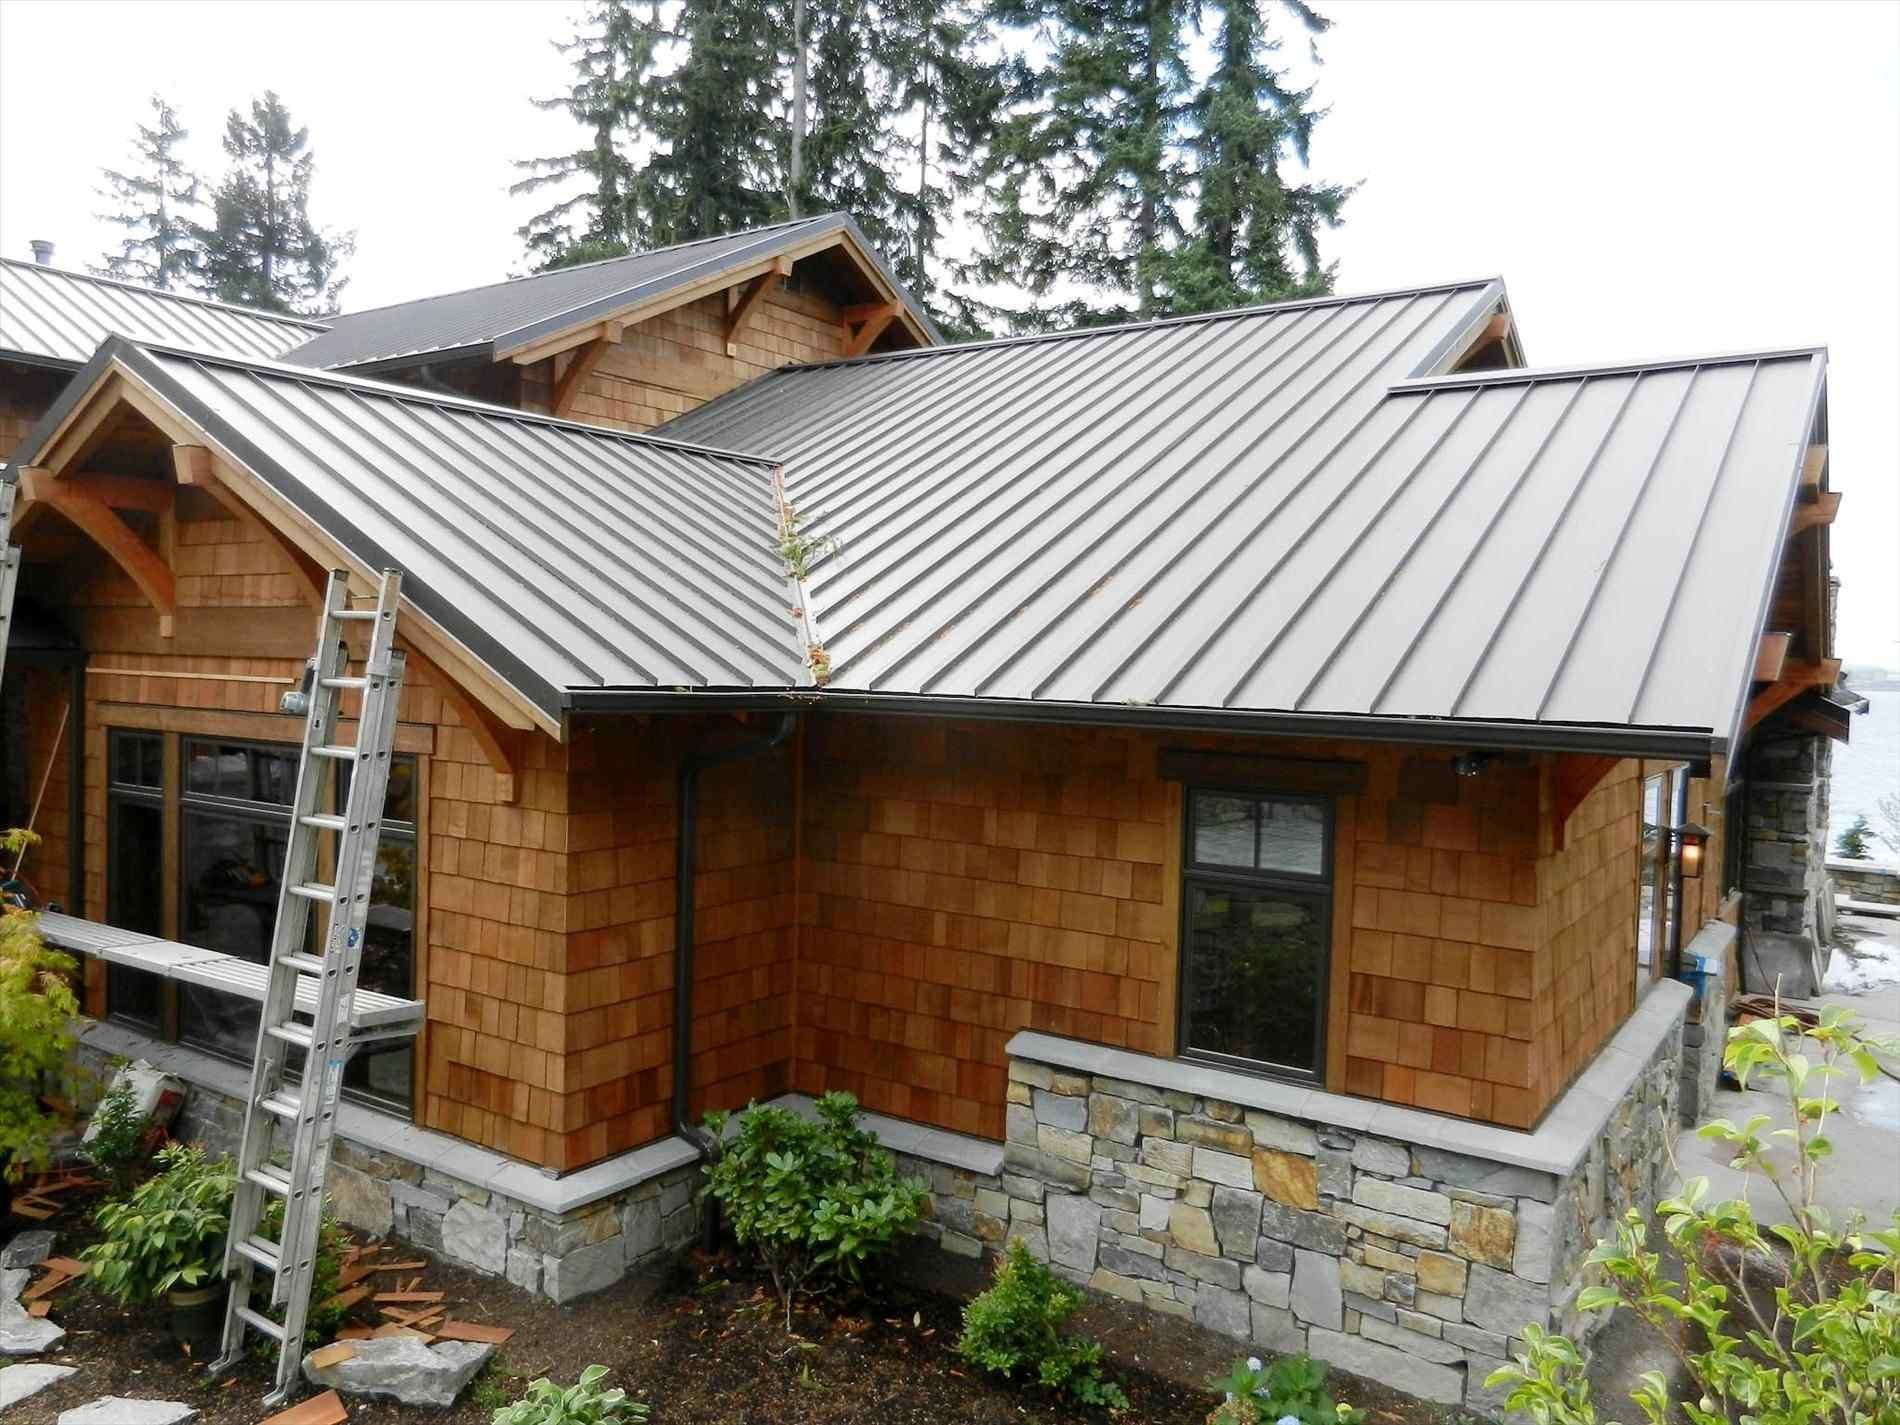 Colors Of Metal Roofing Home Roof Ideas Metal Roof Houses Metal Roof Colors House Roof